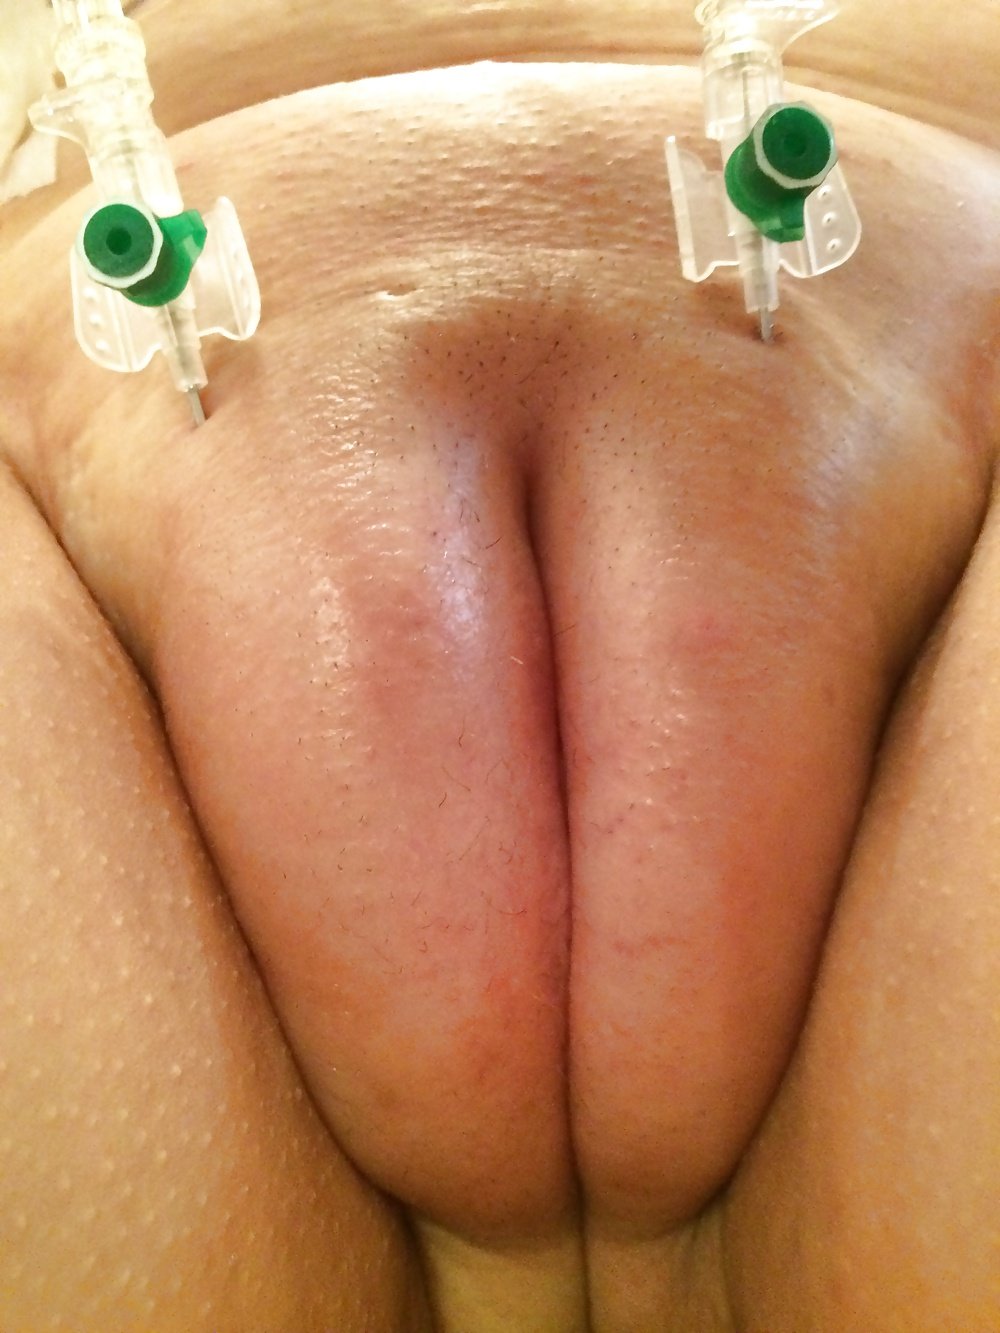 injection-in-female-butt-porno